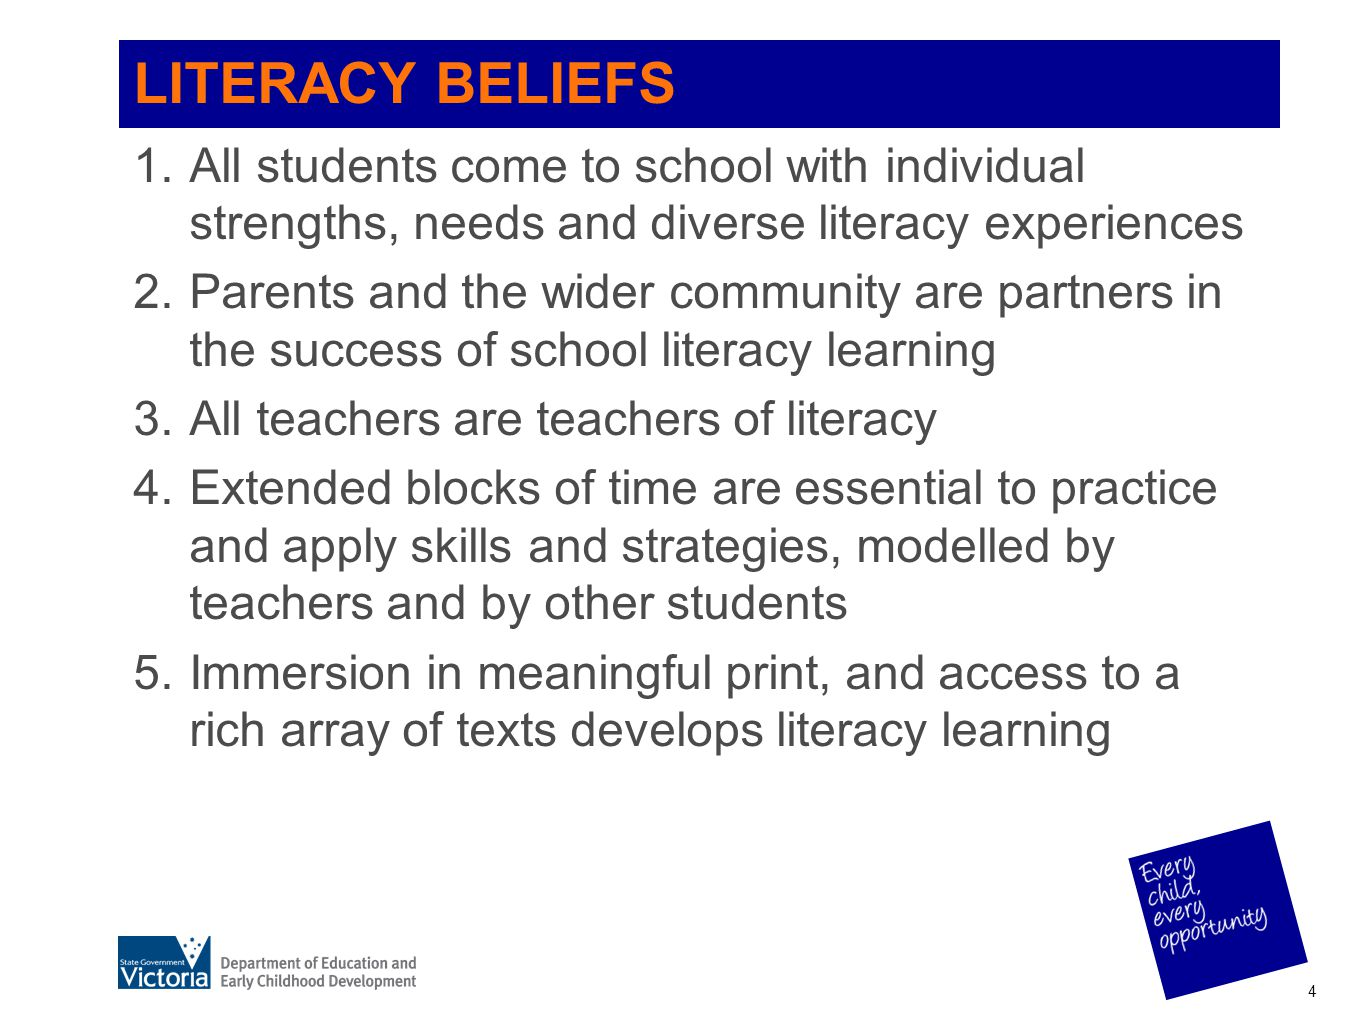 LITERACY BELIEFS 1.All students come to school with individual strengths, needs and diverse literacy experiences 2.Parents and the wider community are